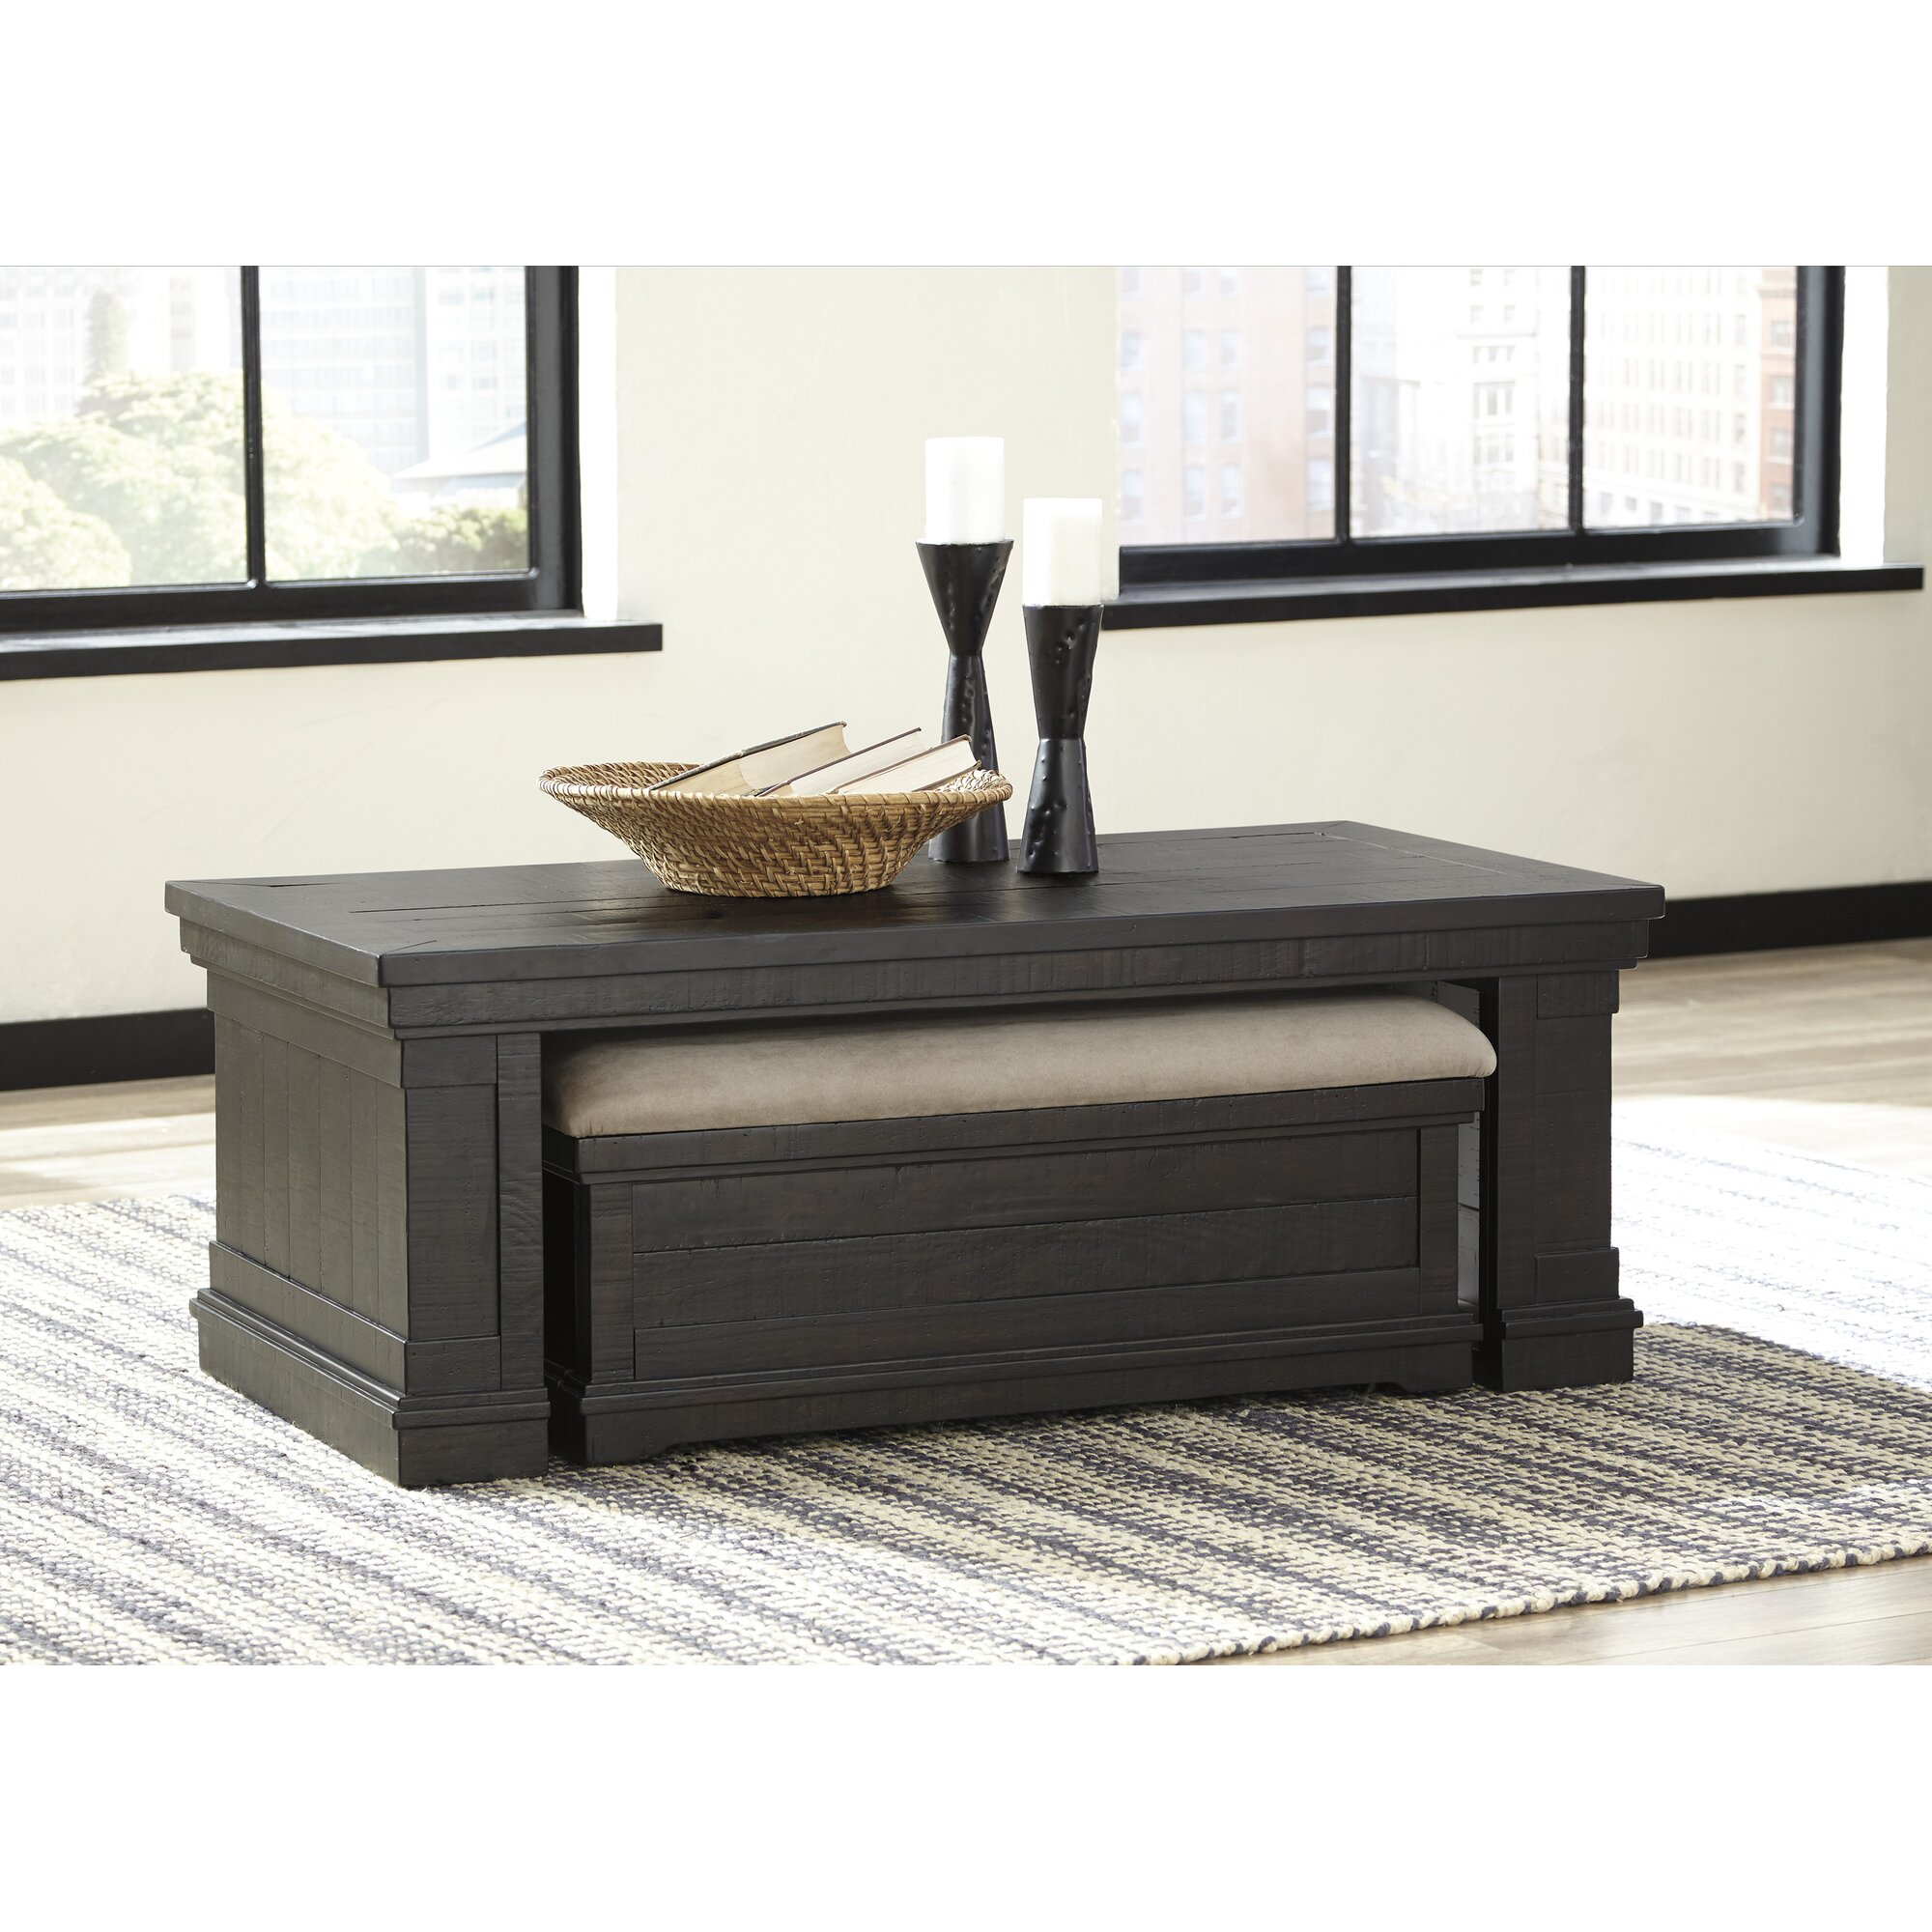 Coffee table with nesting ottomans - Fargo Coffee Table With Nested Ottoman